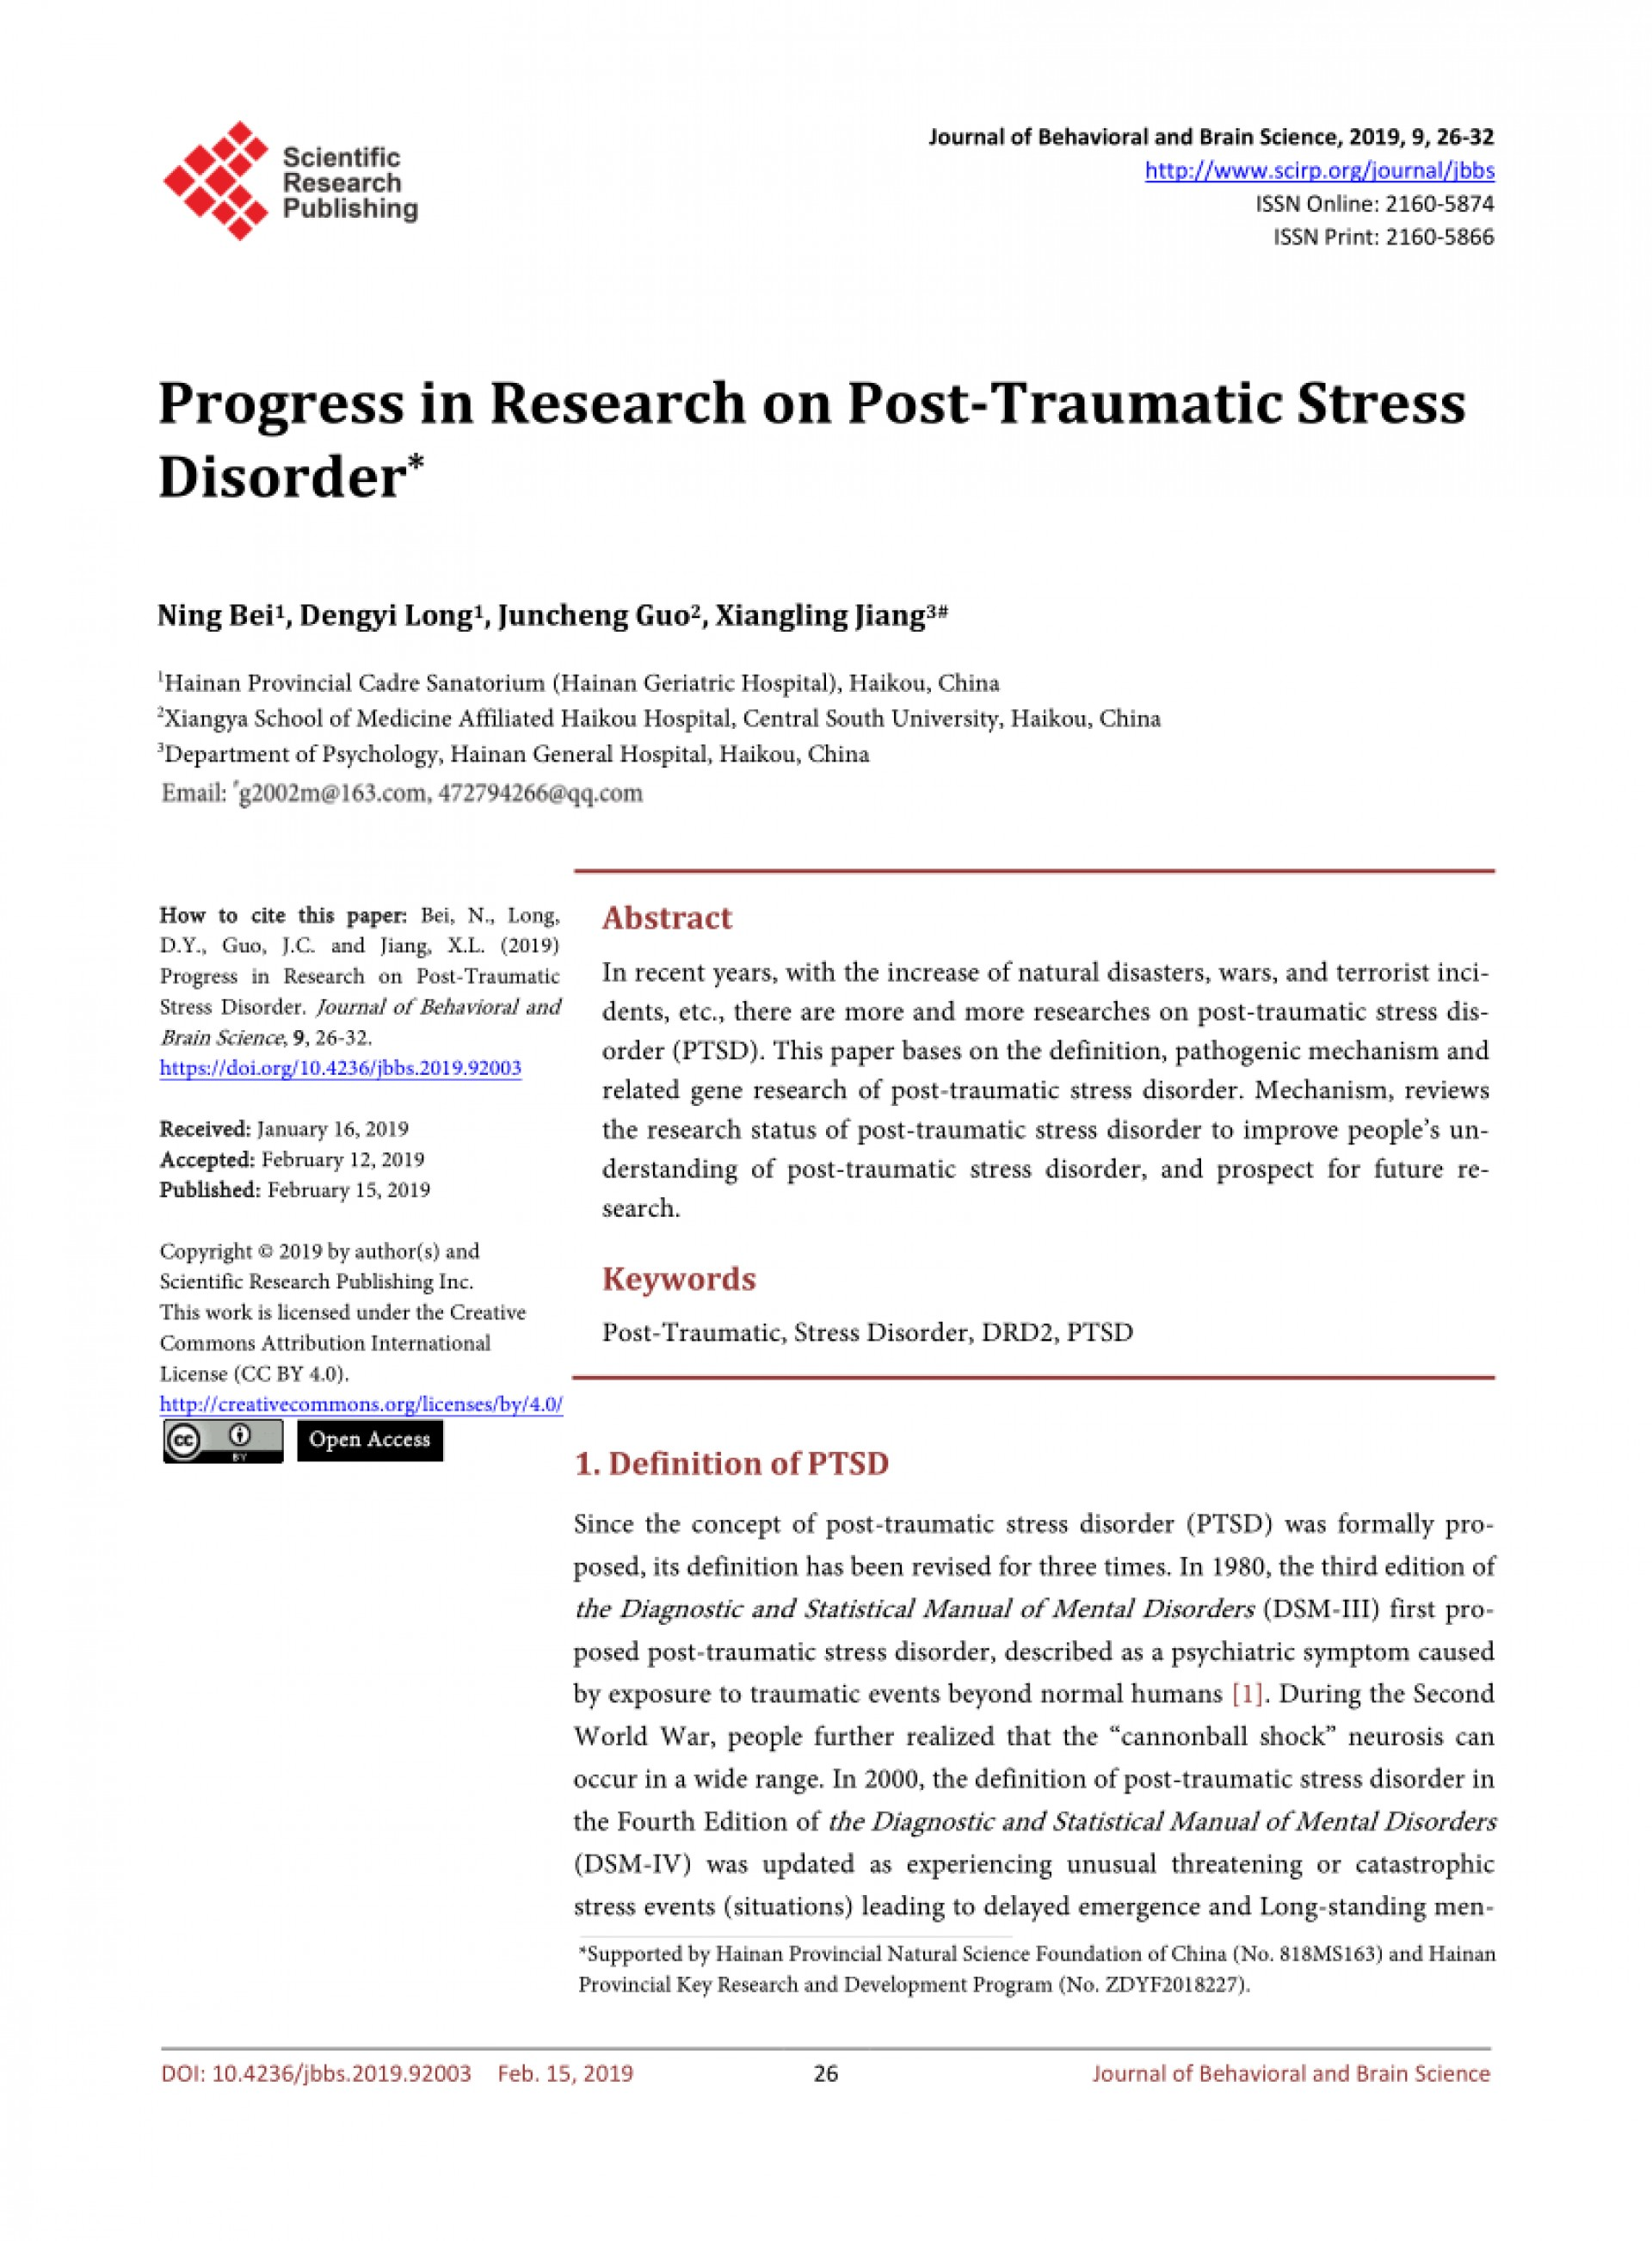 001 Research Paper Largepreview Latest On Post Traumatic Stress Magnificent Disorder Information Topics 1920